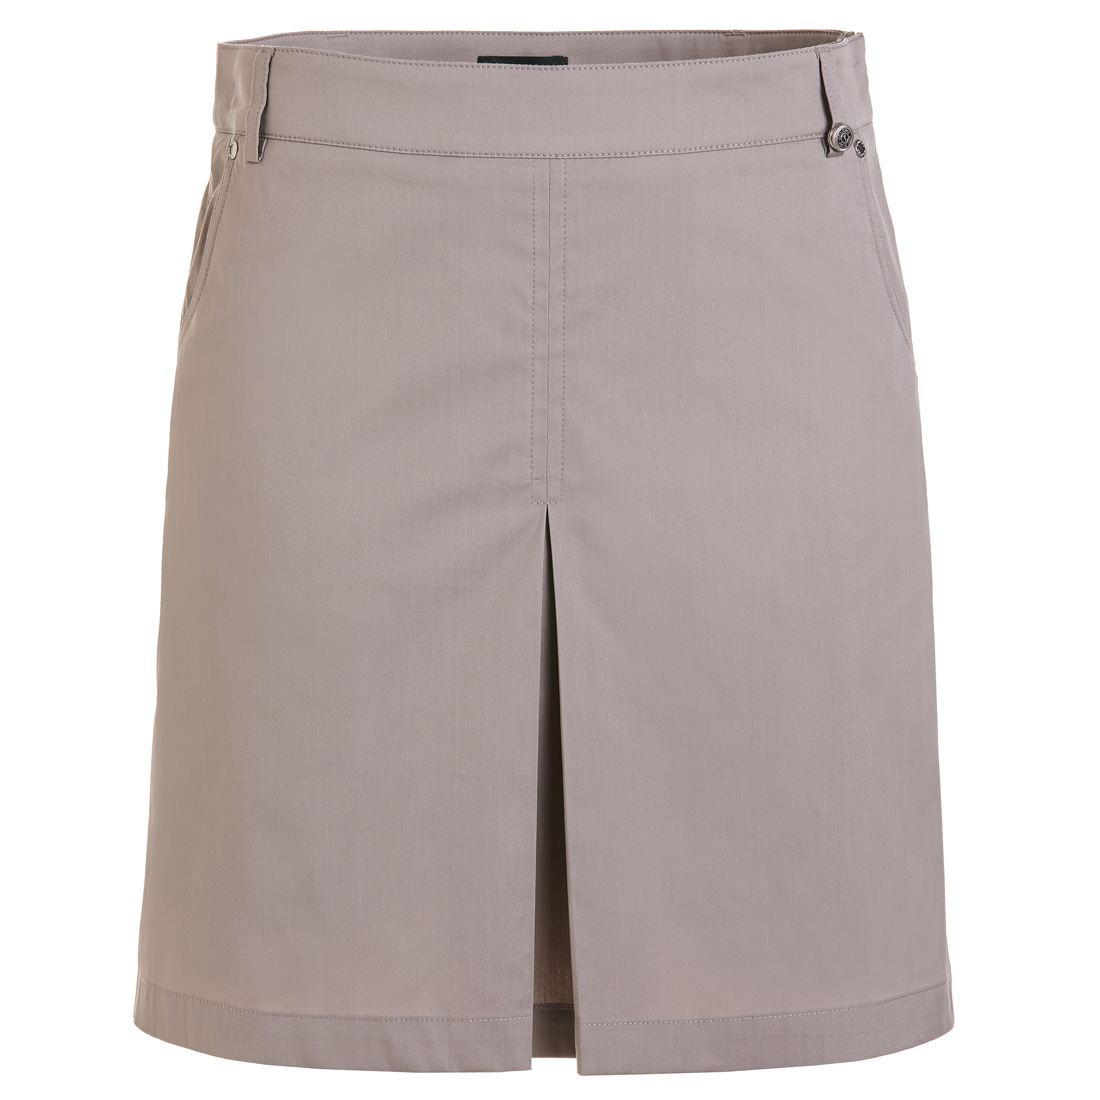 Golf Skort Techno Stretch in Comfortable Fit